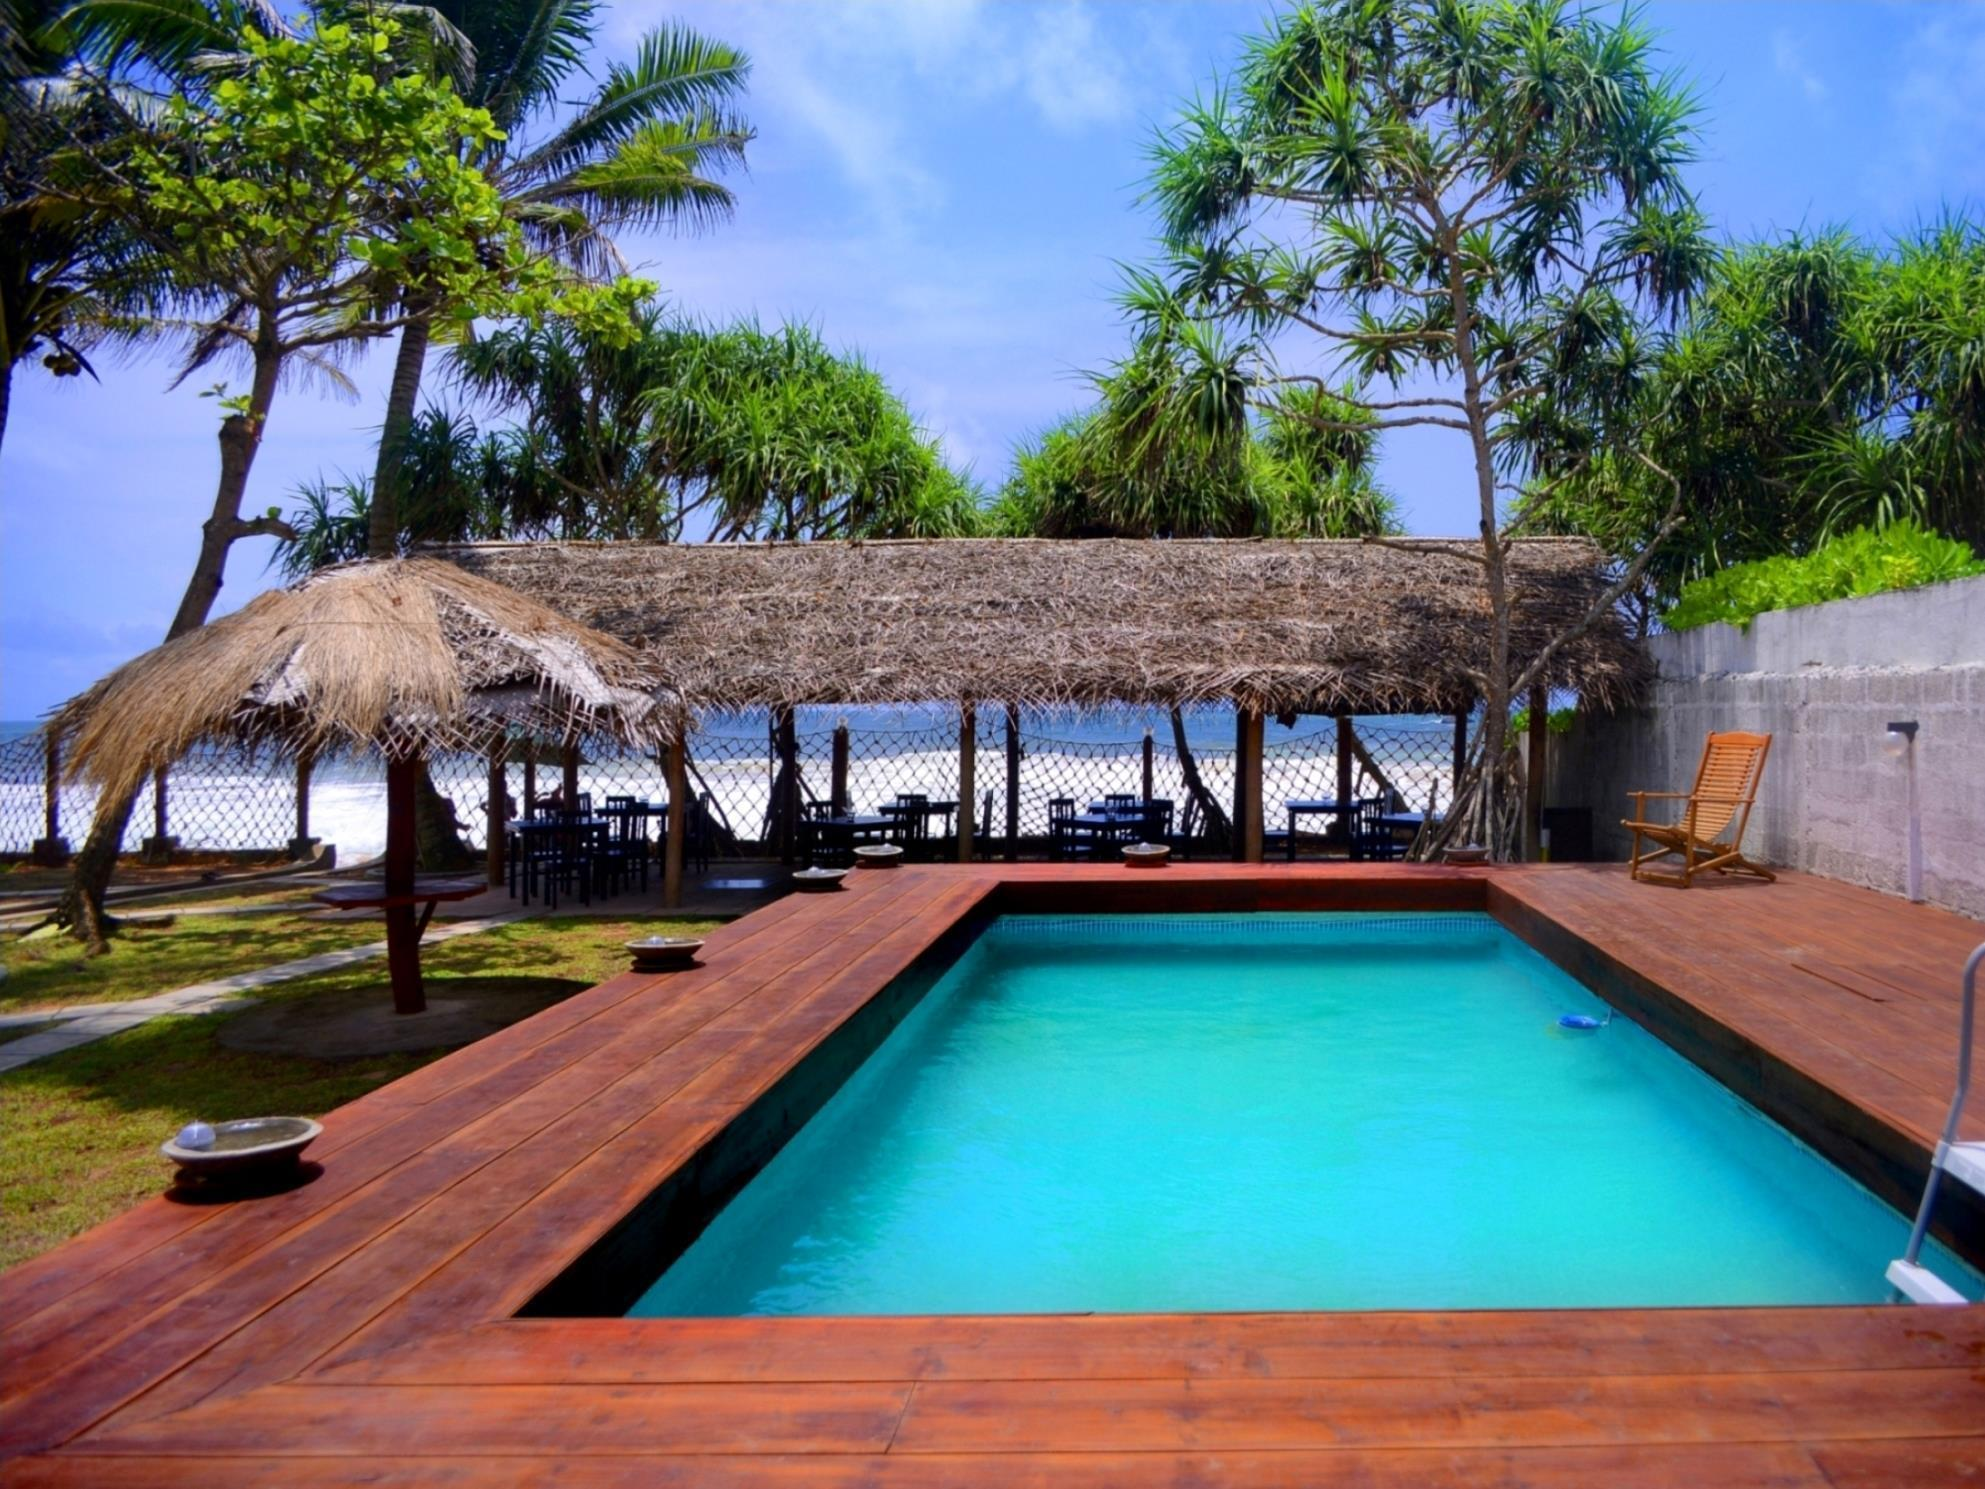 Chilaw Sri Lanka | Chilaw Hotels | Things to do in Chilaw